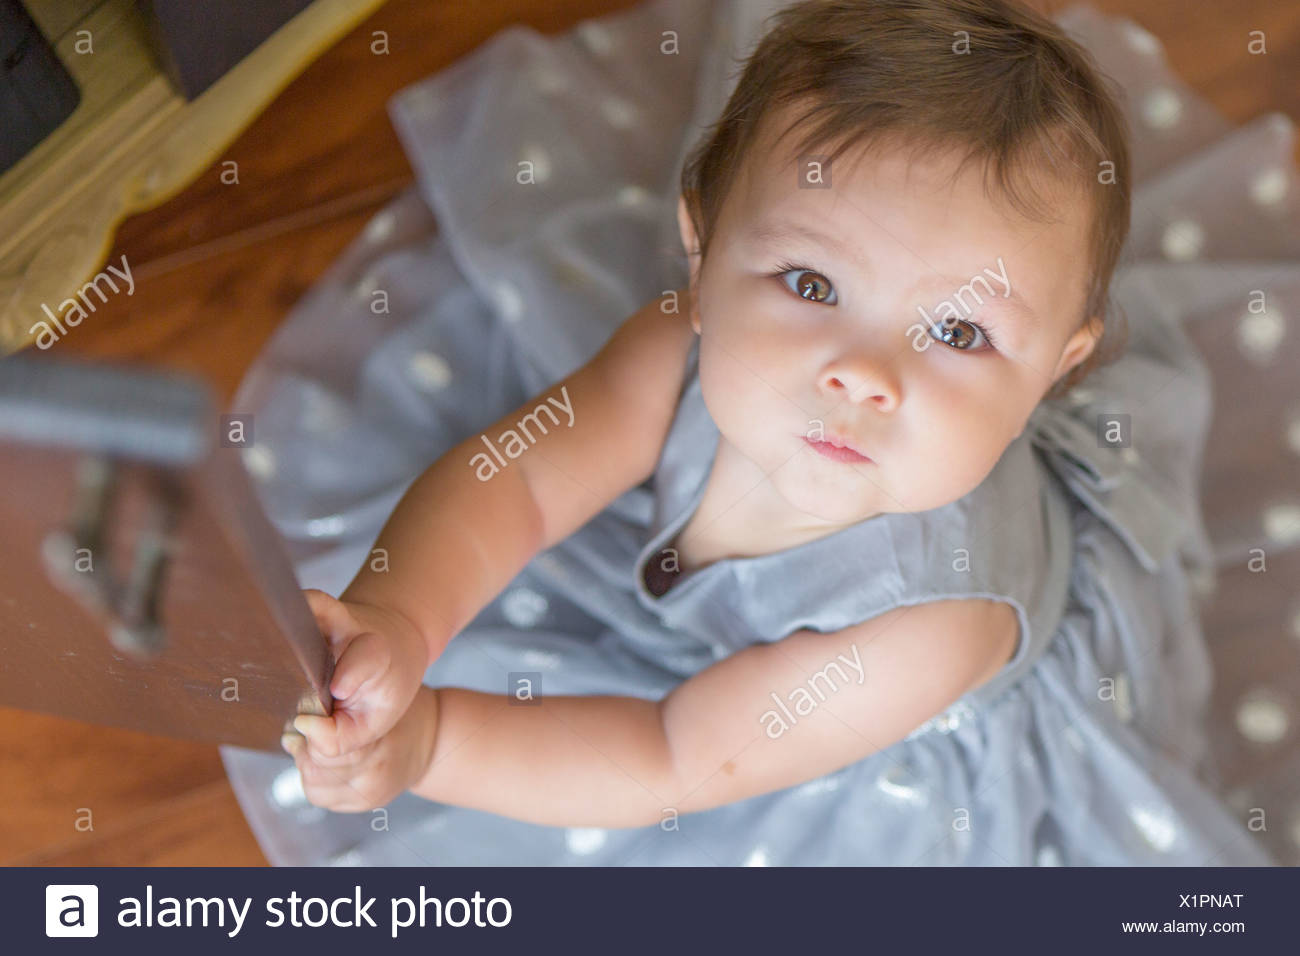 Baby girl wearing party dress, looking up - Stock Image